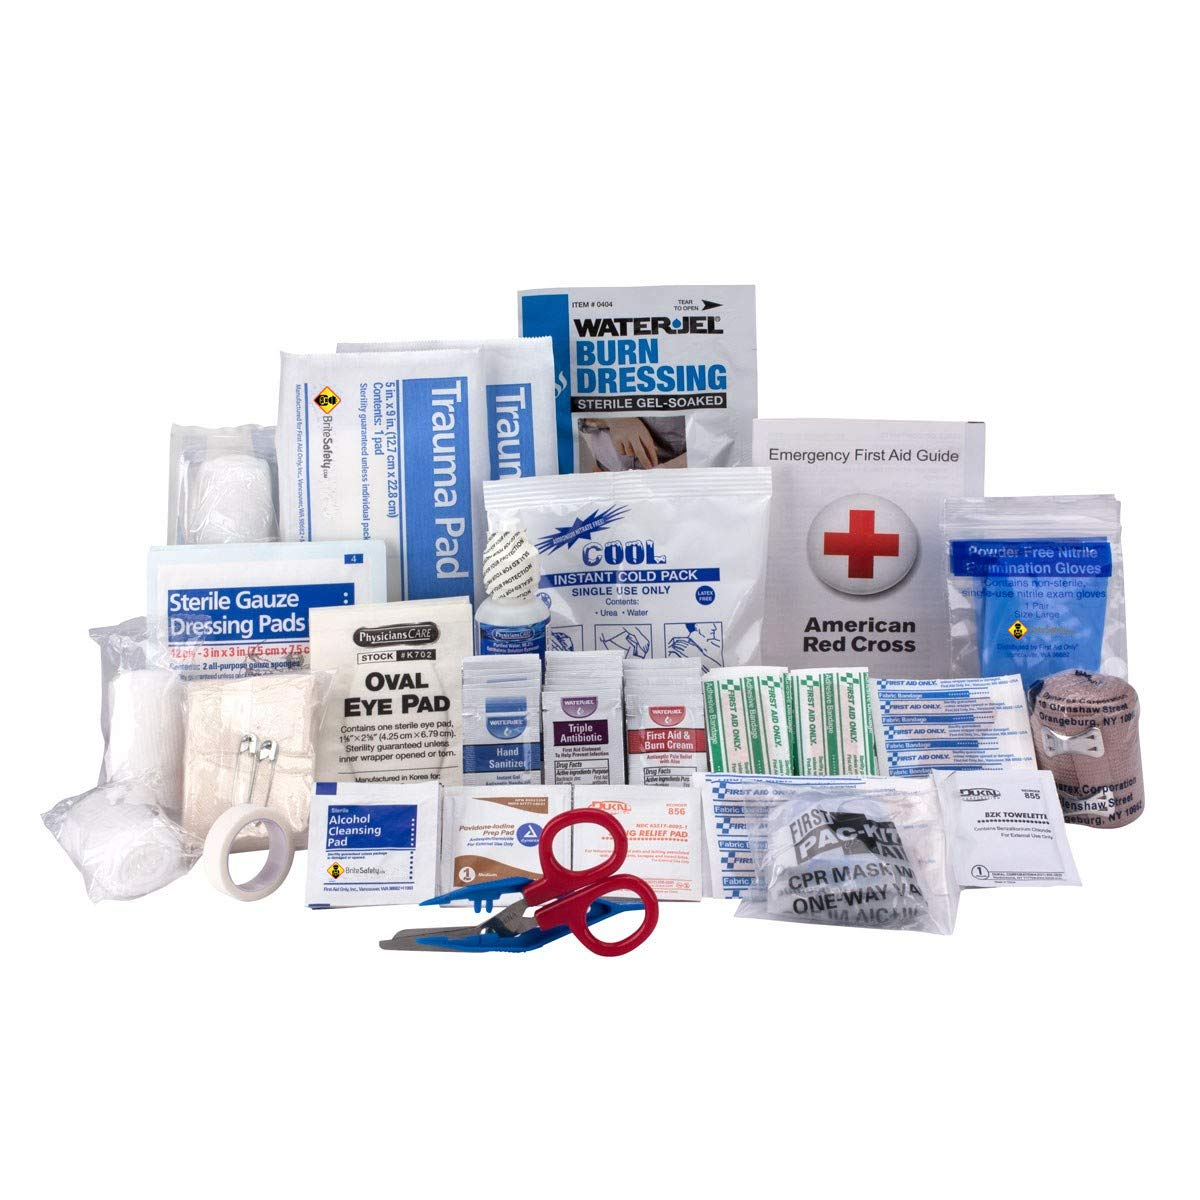 50 Person ANSI A+, First Aid Refill - OSHA Compliant 2018 Trauma Kit First Aid Kit Cabinet Refill Emergency Aid Kit